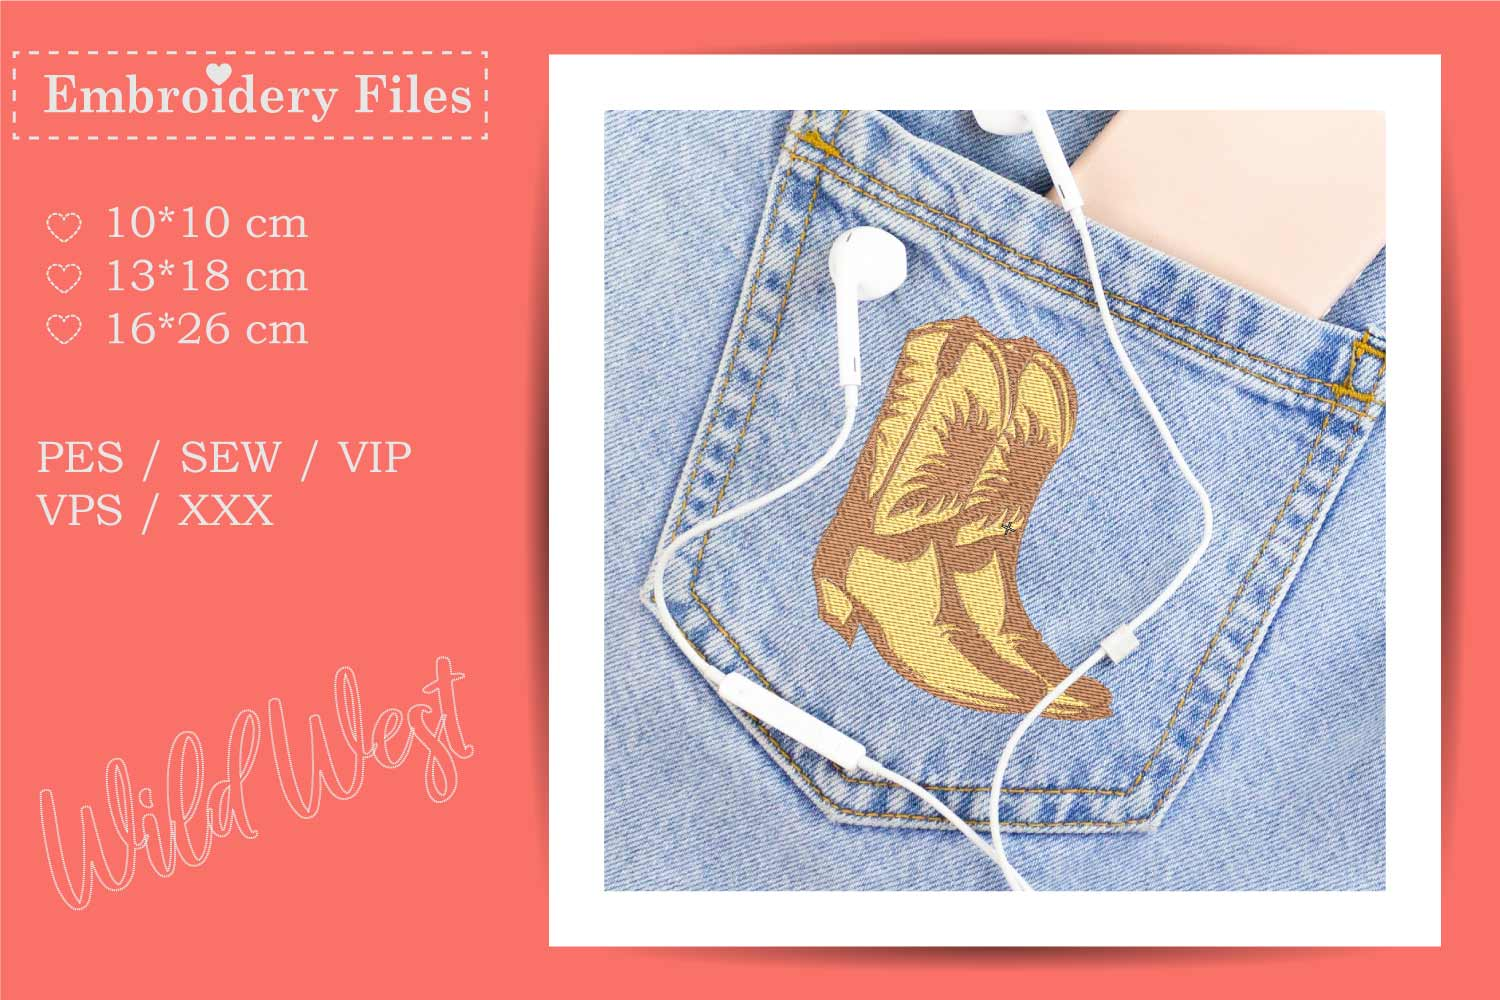 Cowboy Boots - Embroidery File for Beginners example image 2